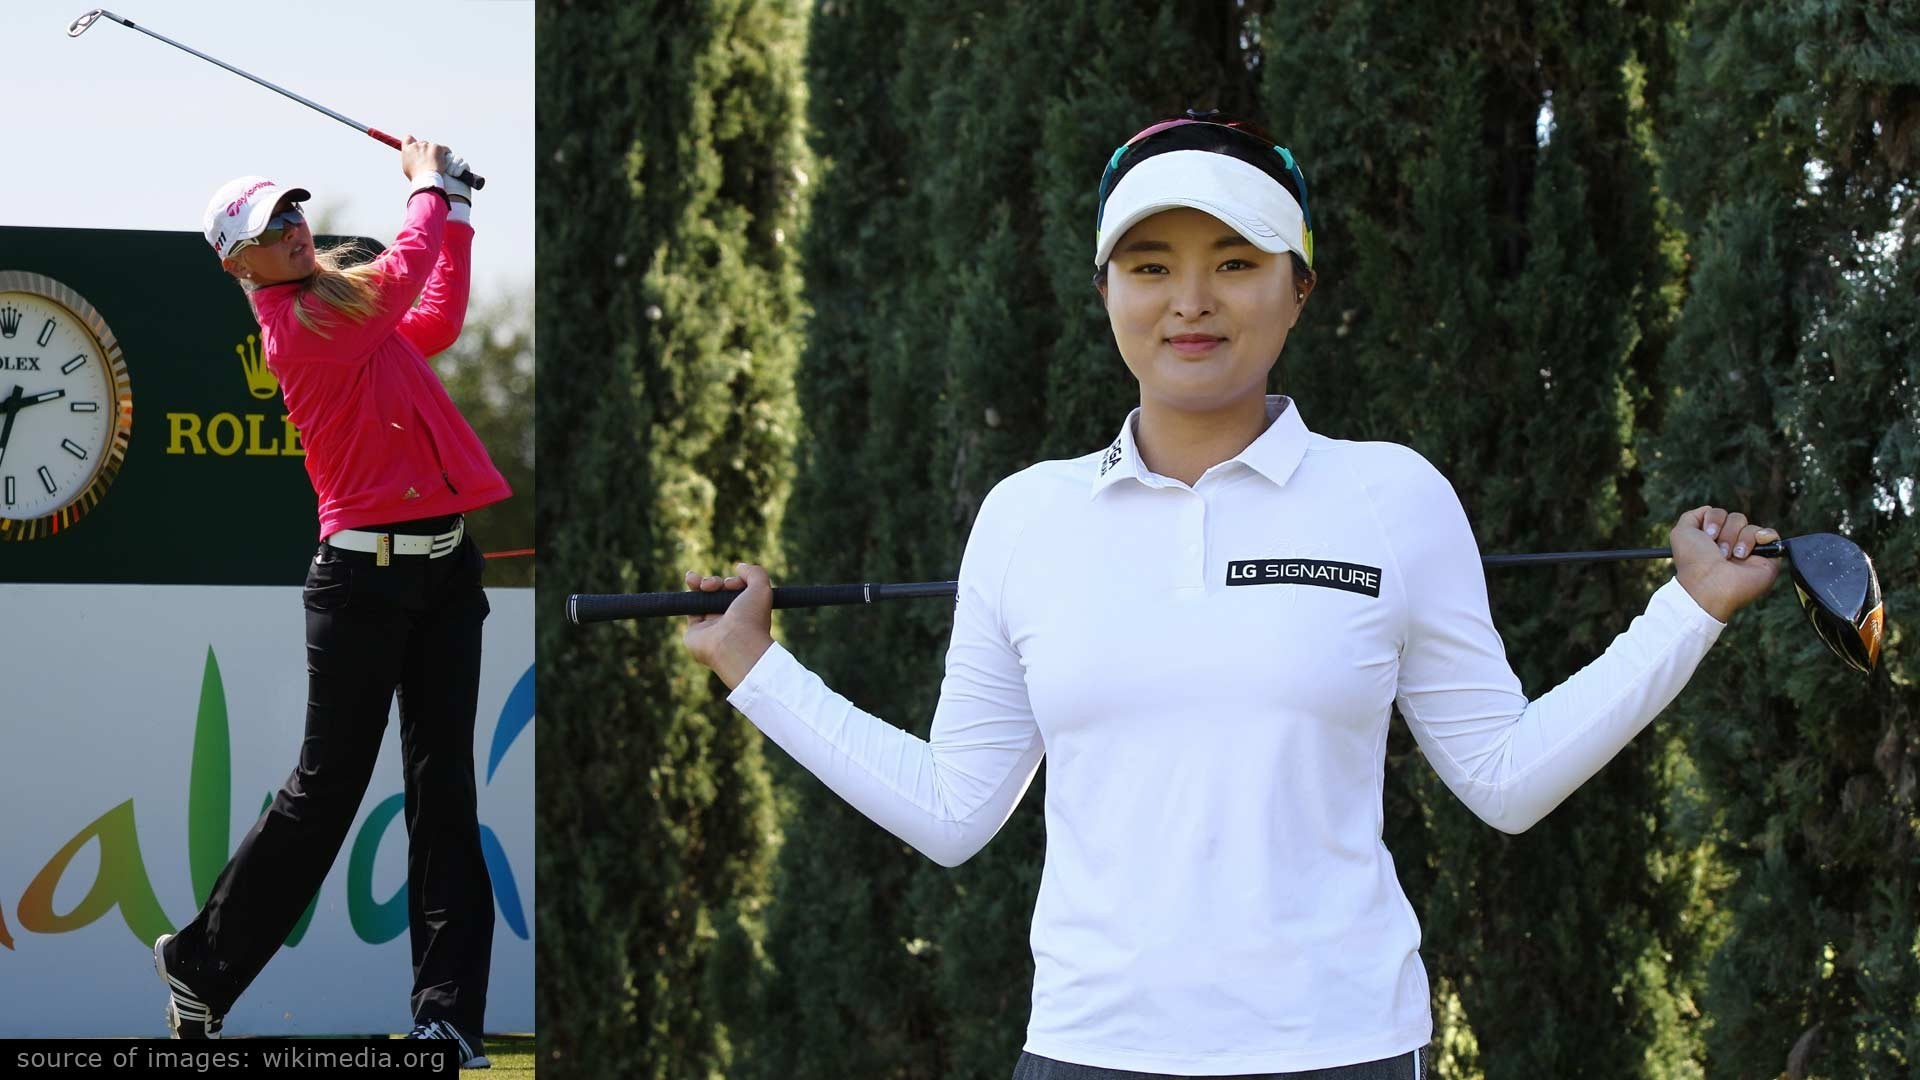 Tallest Female Golfers